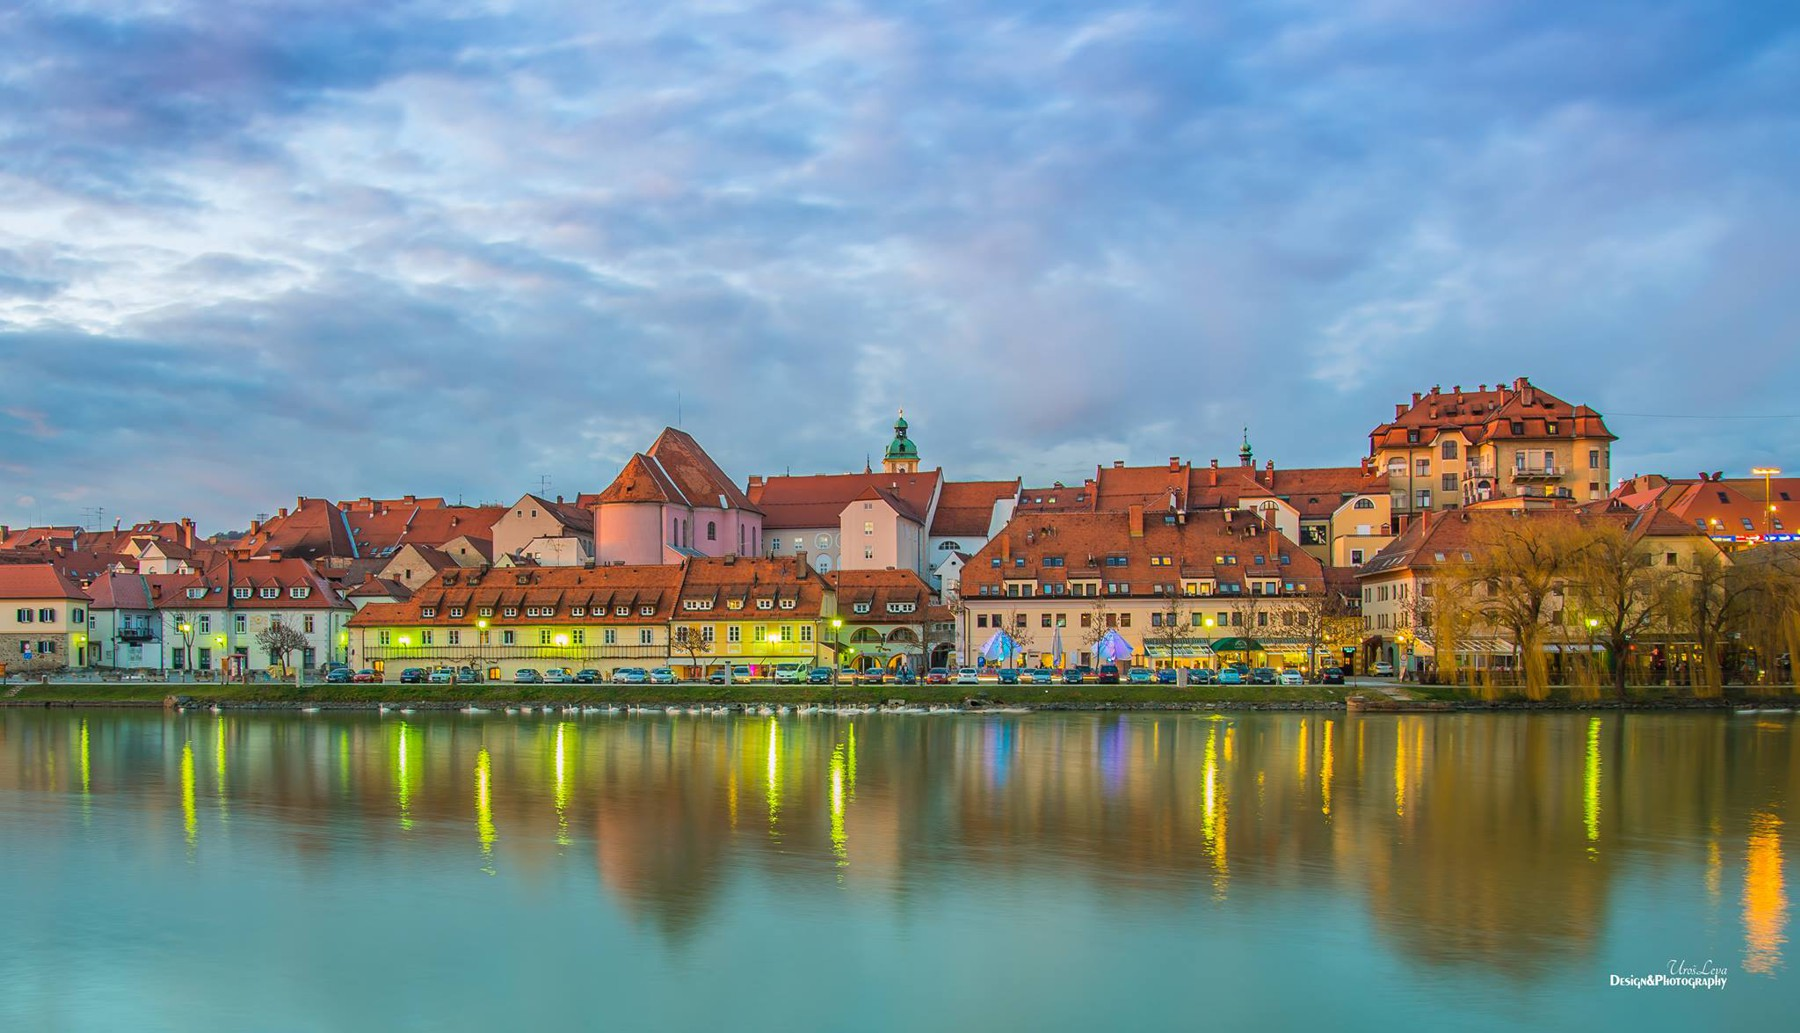 25 Photos Of Maribor And Its Surrounding Area By Uros Leva